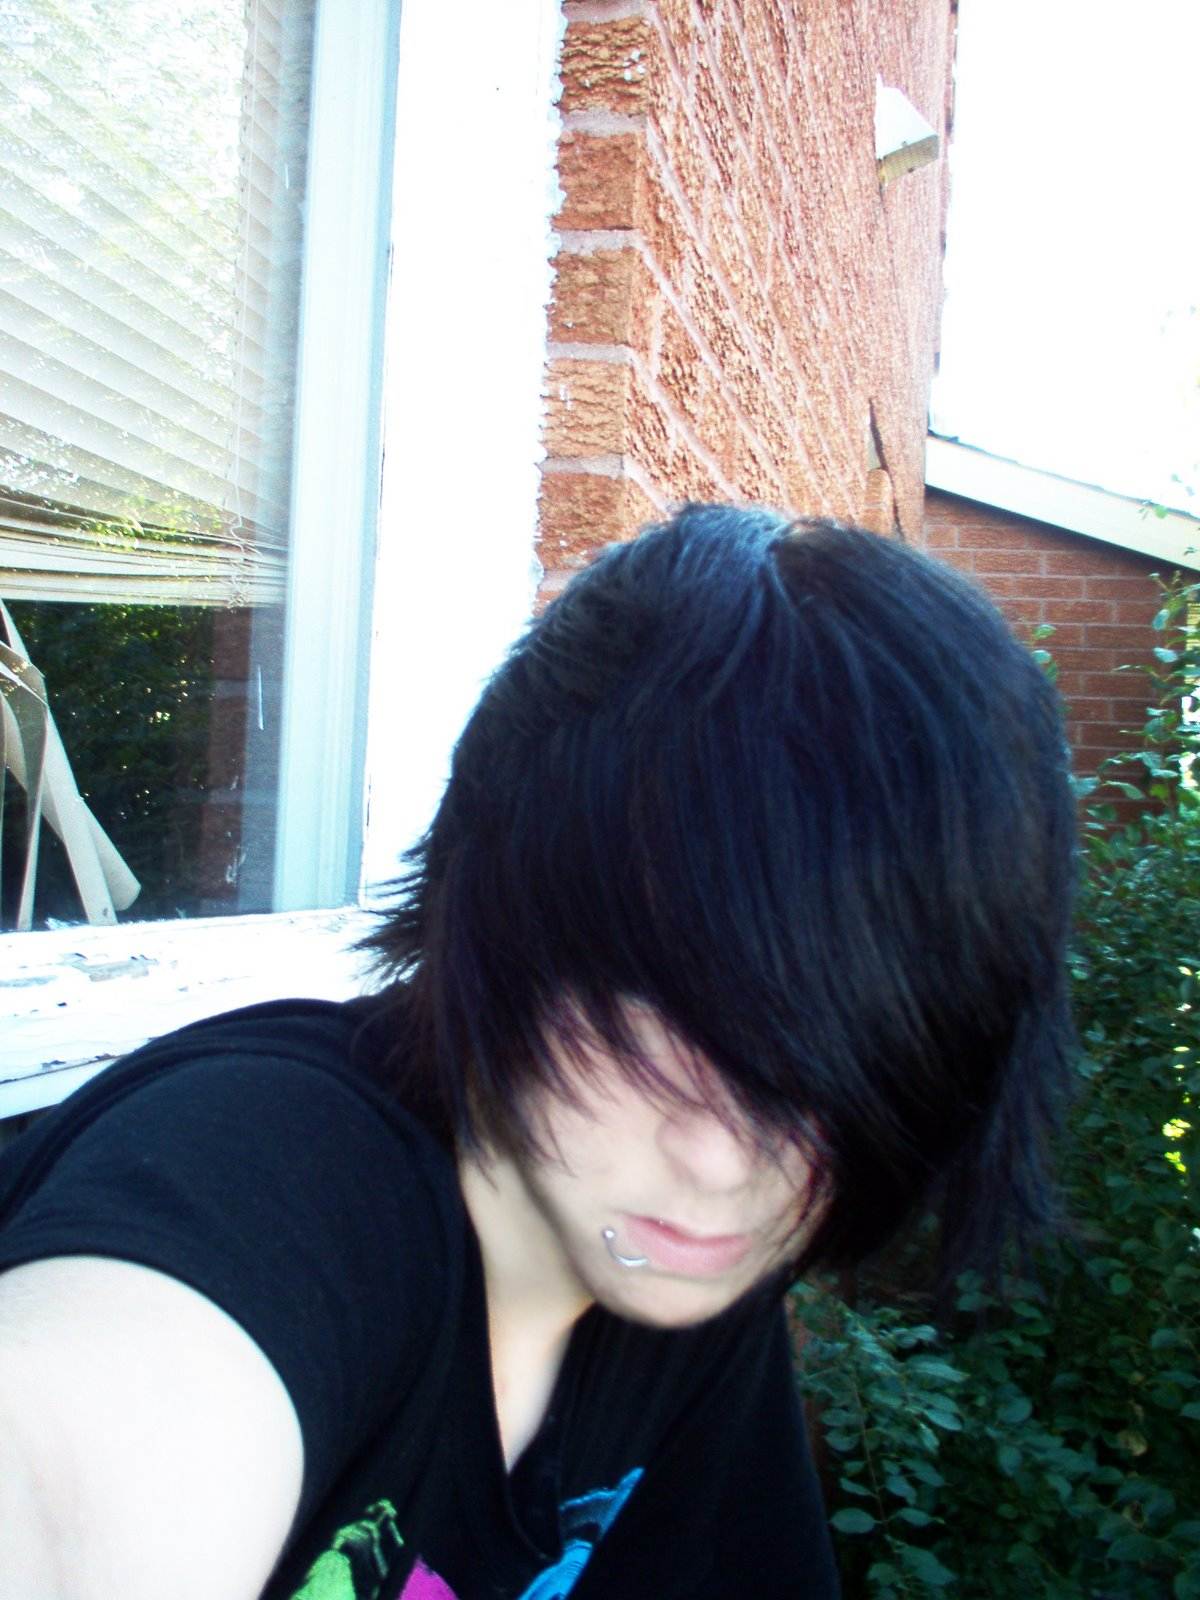 Hairstyles For Men Popular Emo Hairstyles For Boys And